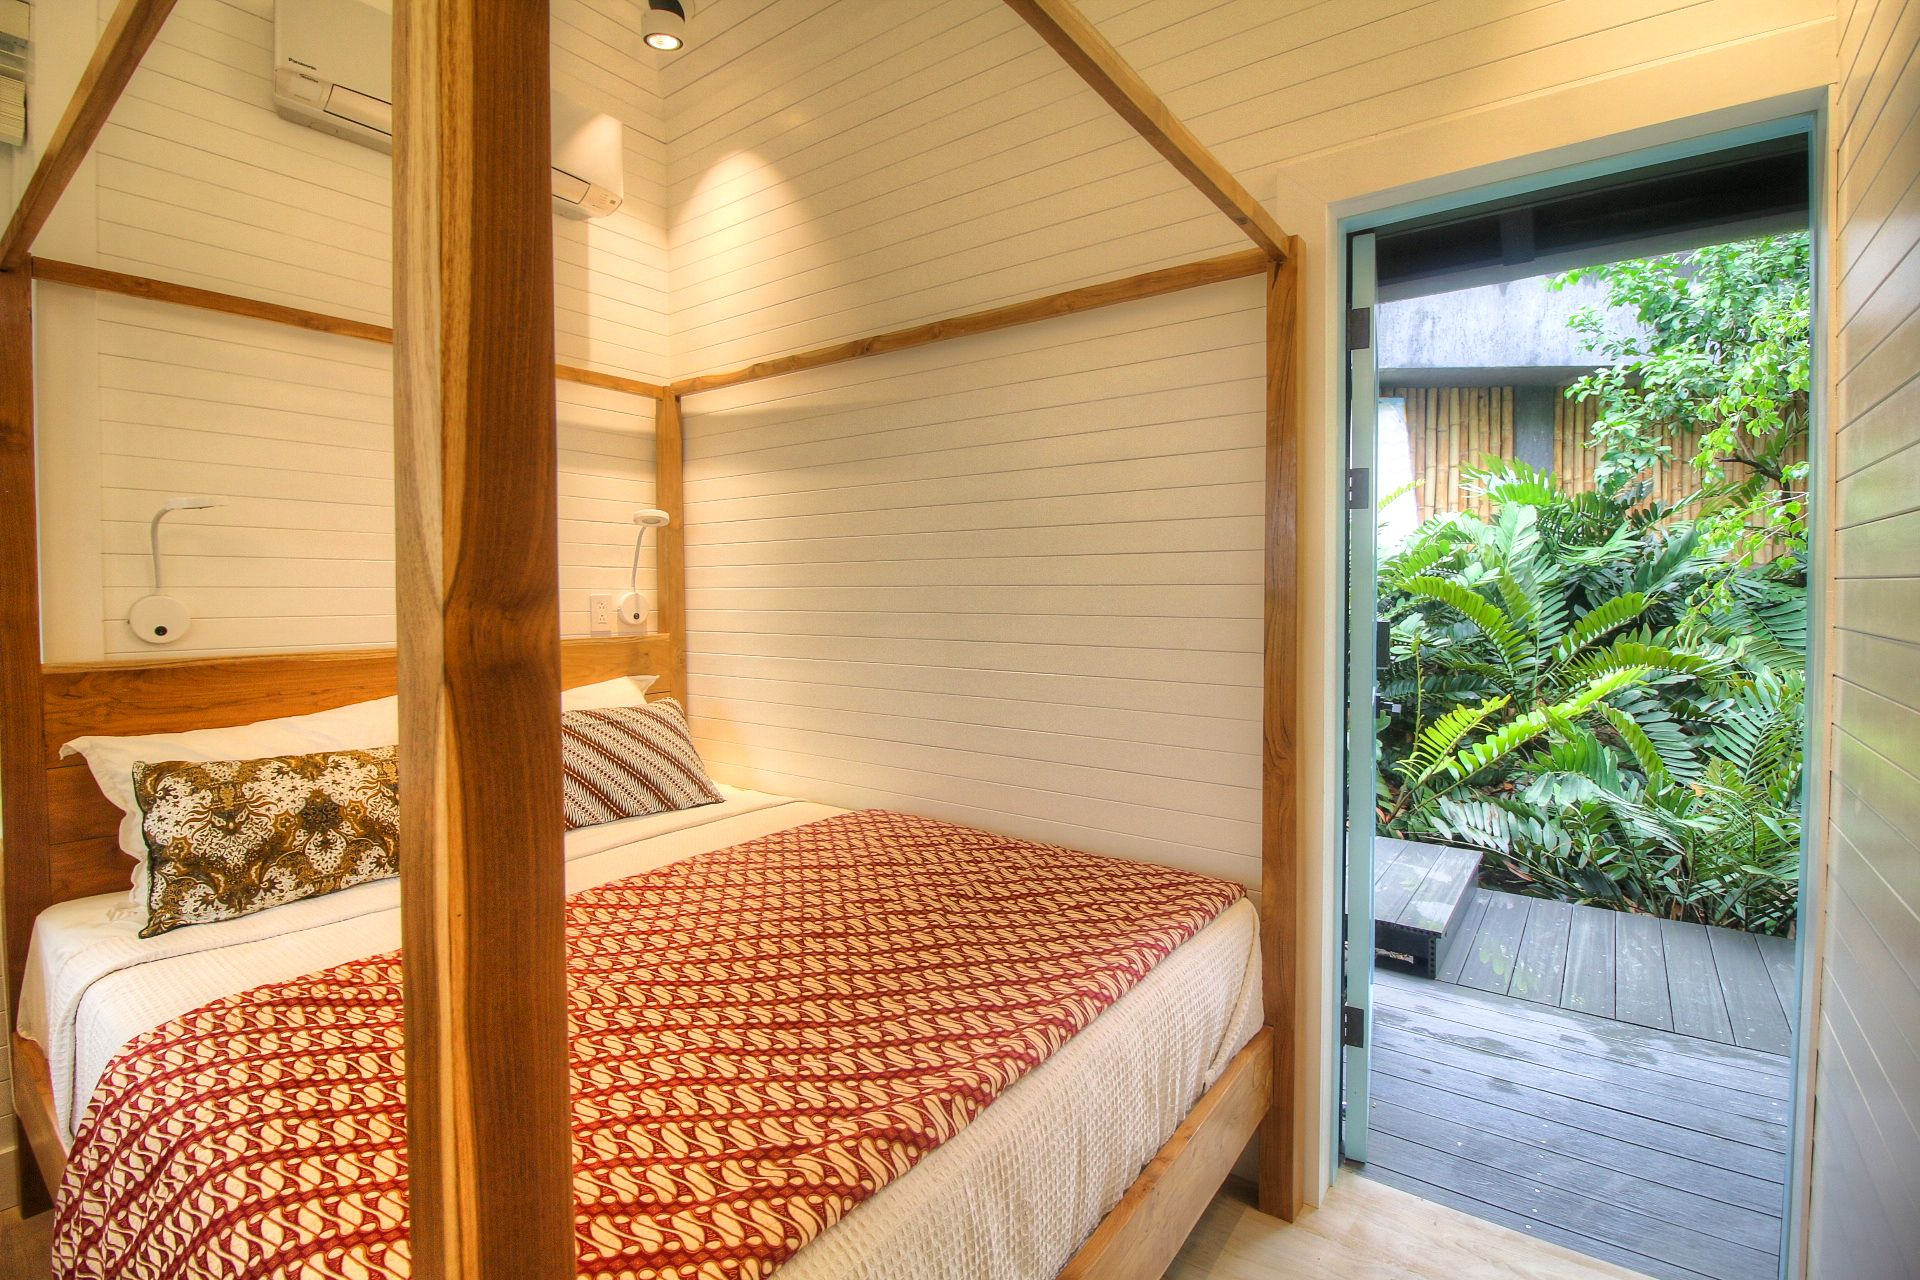 New cottage recently added at El Chante